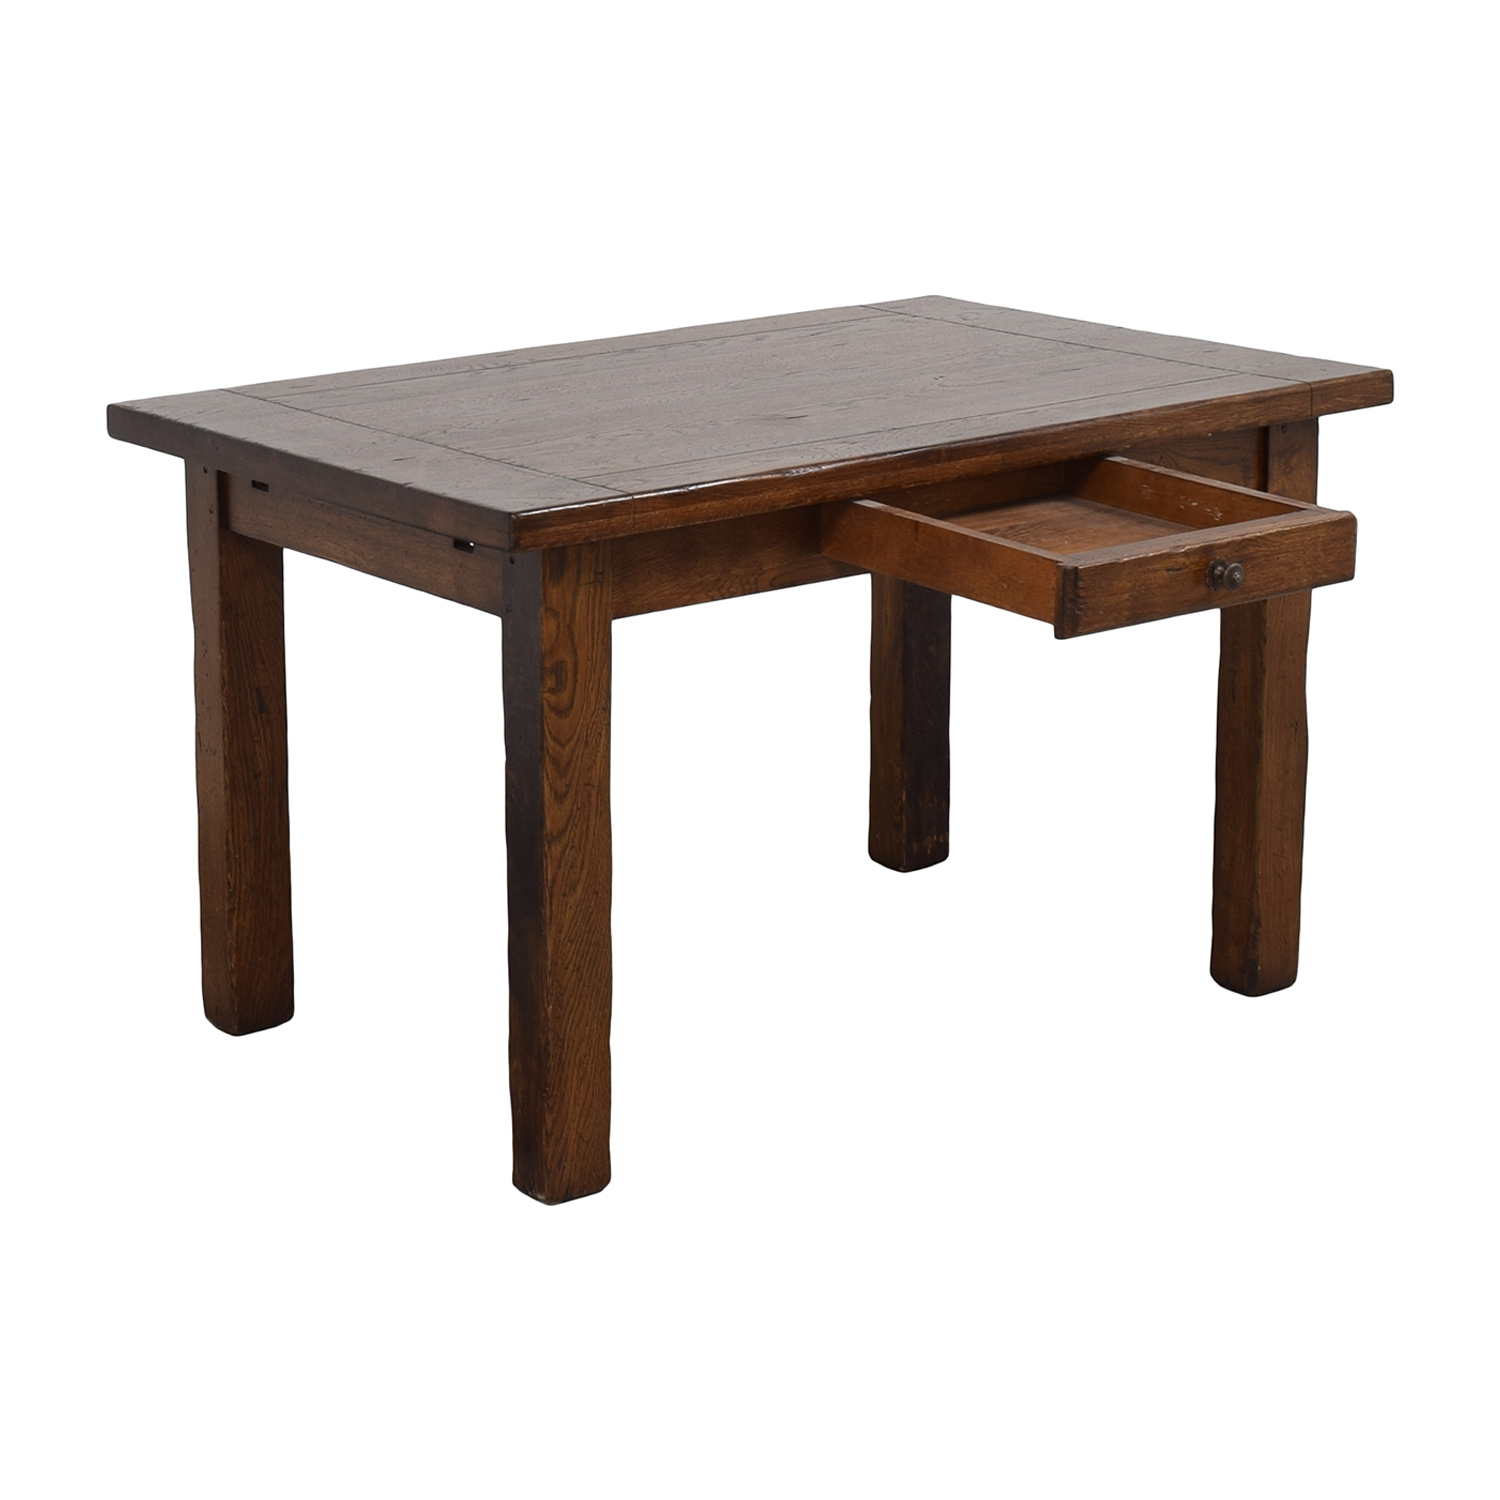 ABC Carpet & Home Dining Table / Tables